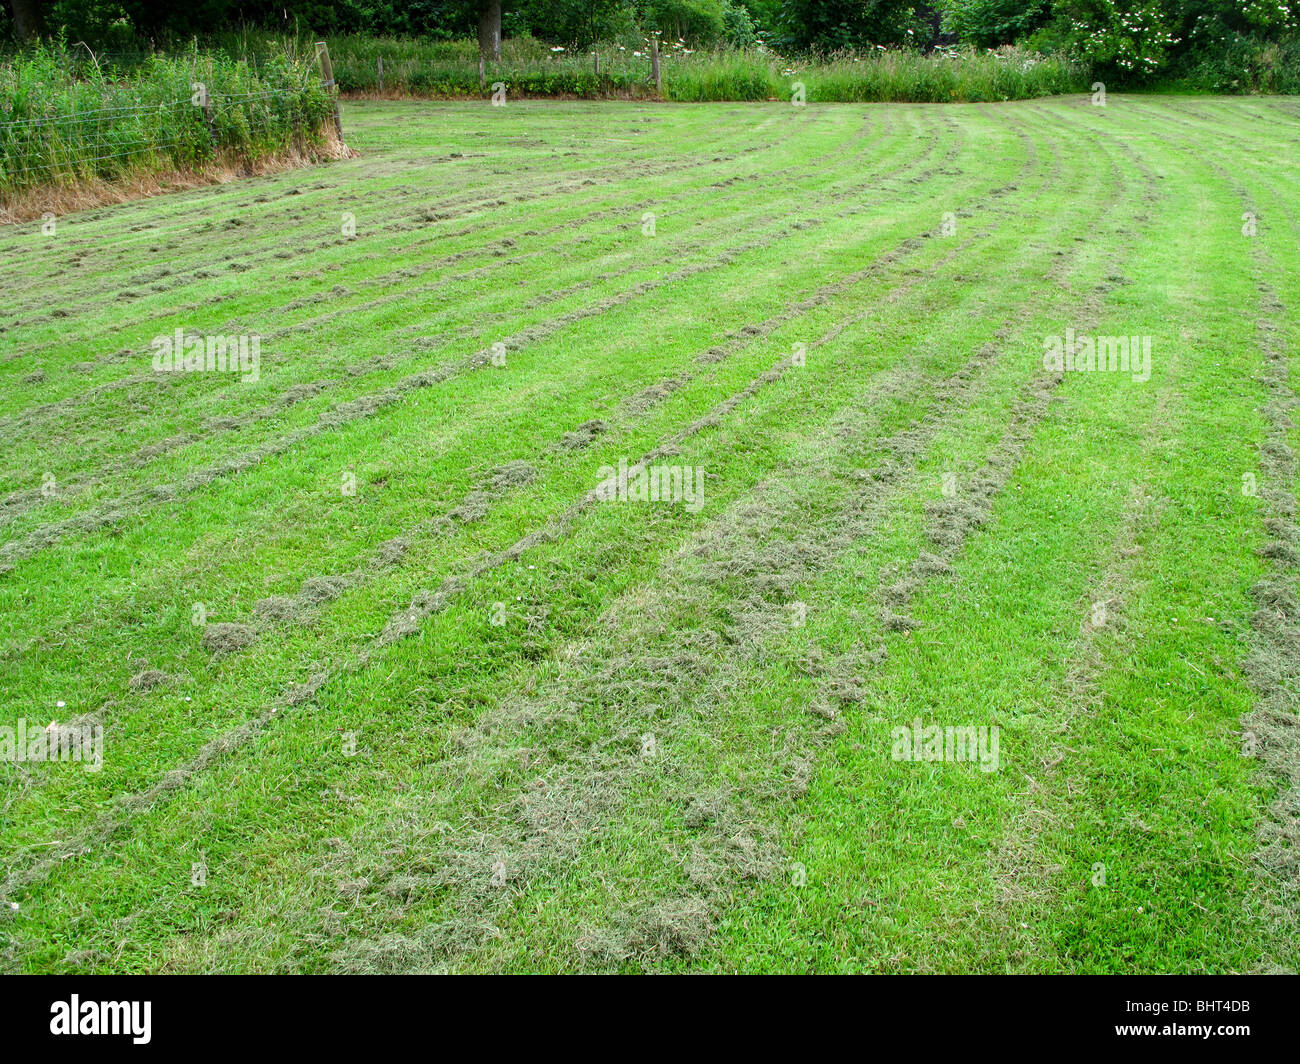 Cut grass lawn - Stock Image